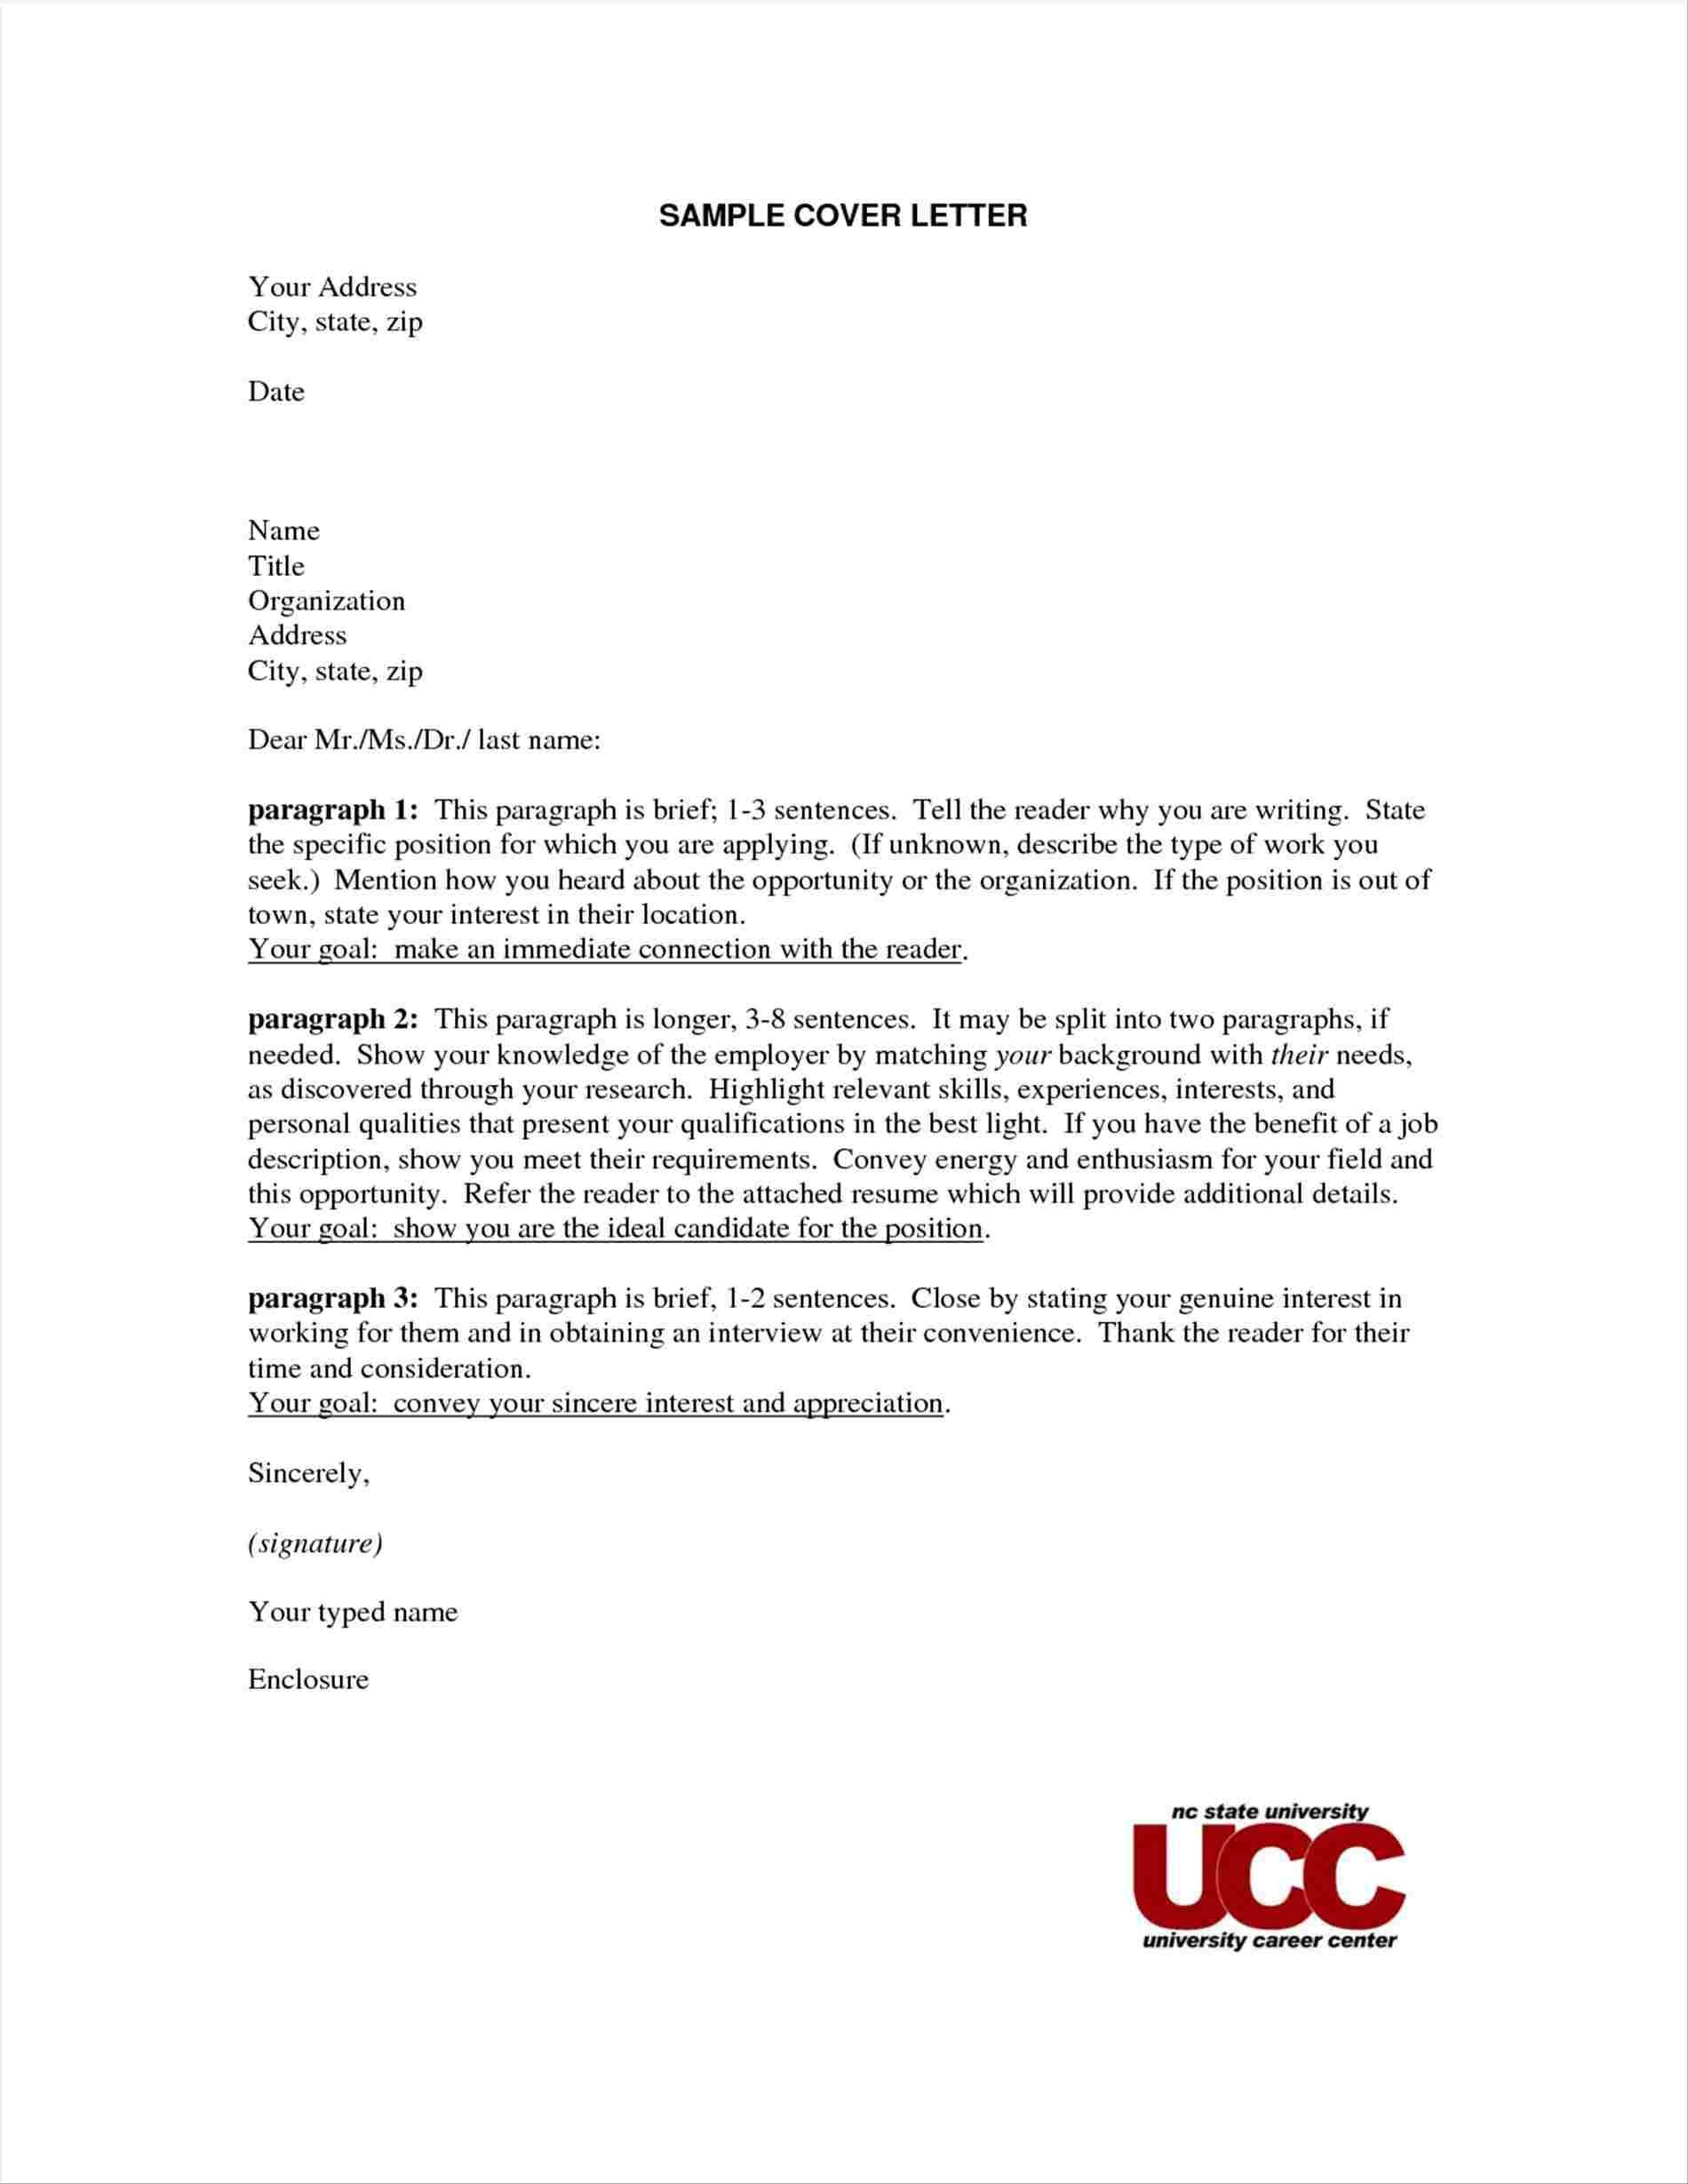 27+ How To Address Cover Letter With No Name Cover